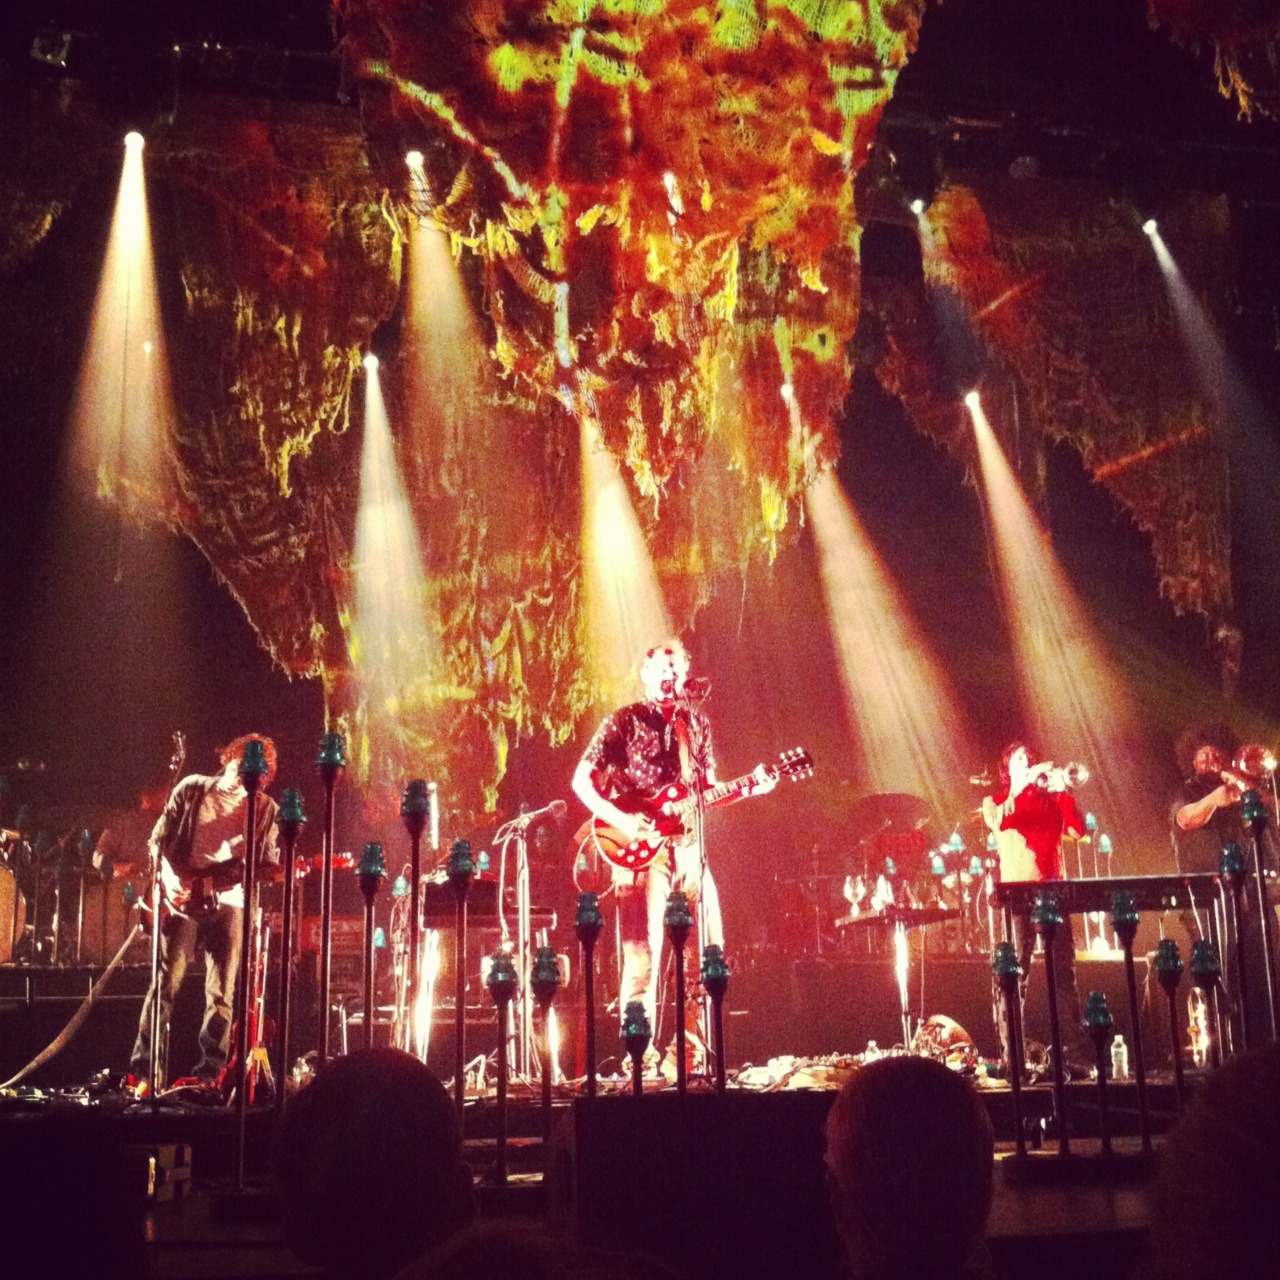 Bon Iver were awesome last night. I'm on a roll lately with awesome acts. Awesome.